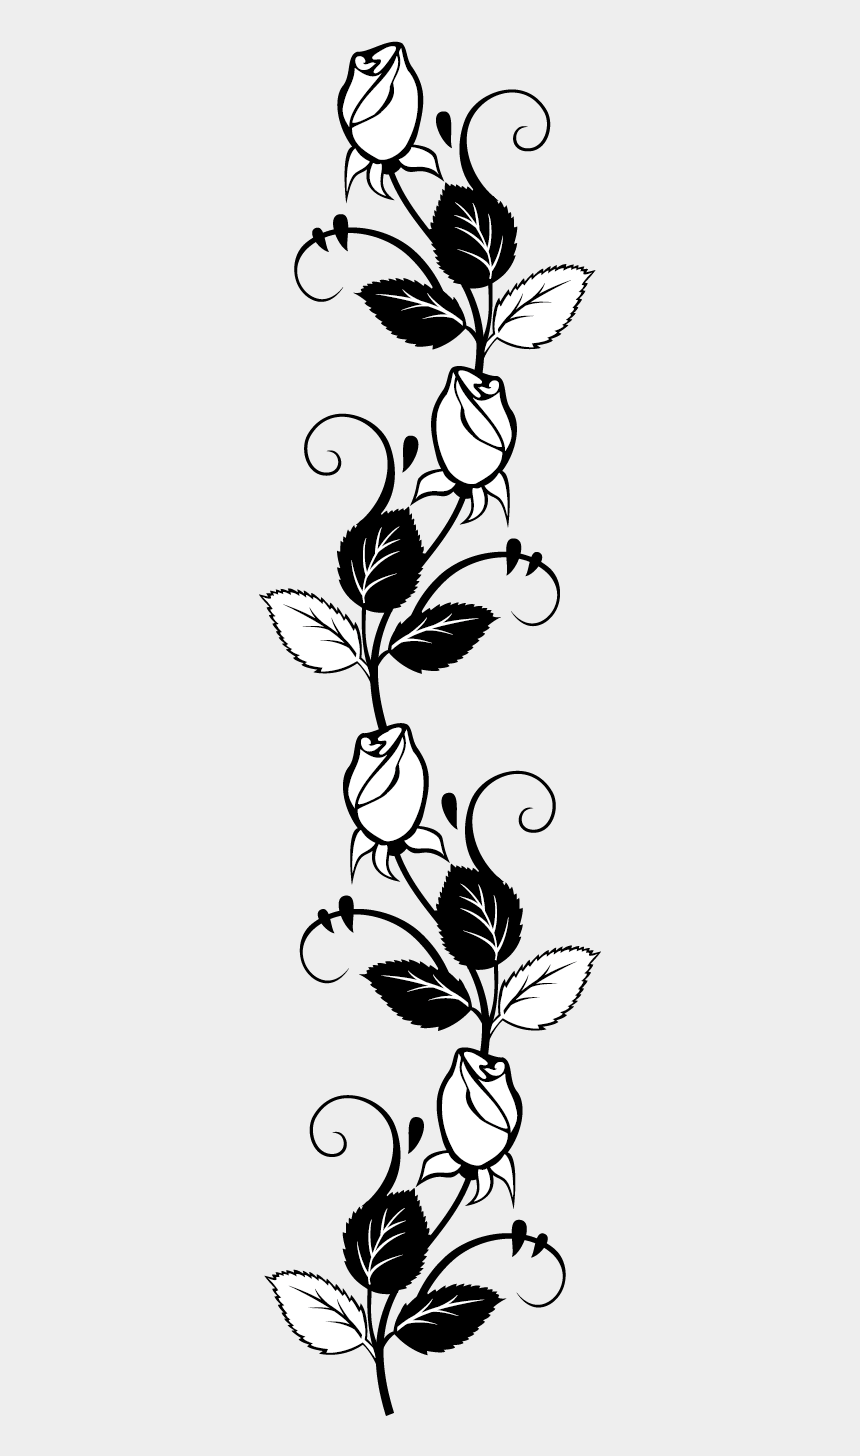 pumpkin clipart black and white vines, Cartoons - Rose Stencil Silhouette Drawing Free Transparent Image - Flower Clip Art Rose Black And White